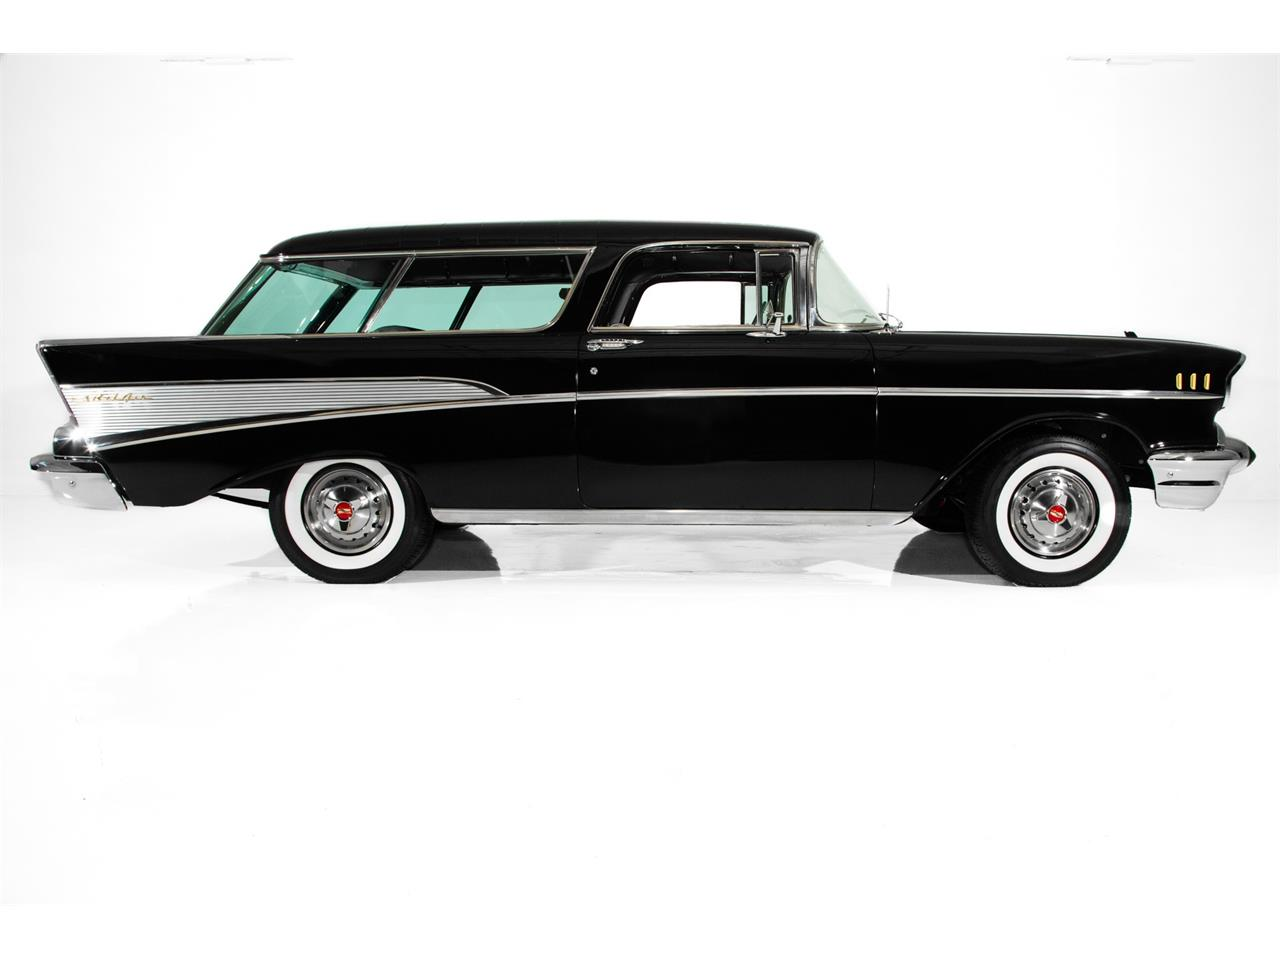 1957 Chevrolet Nomad for sale in Des Moines, IA – photo 2